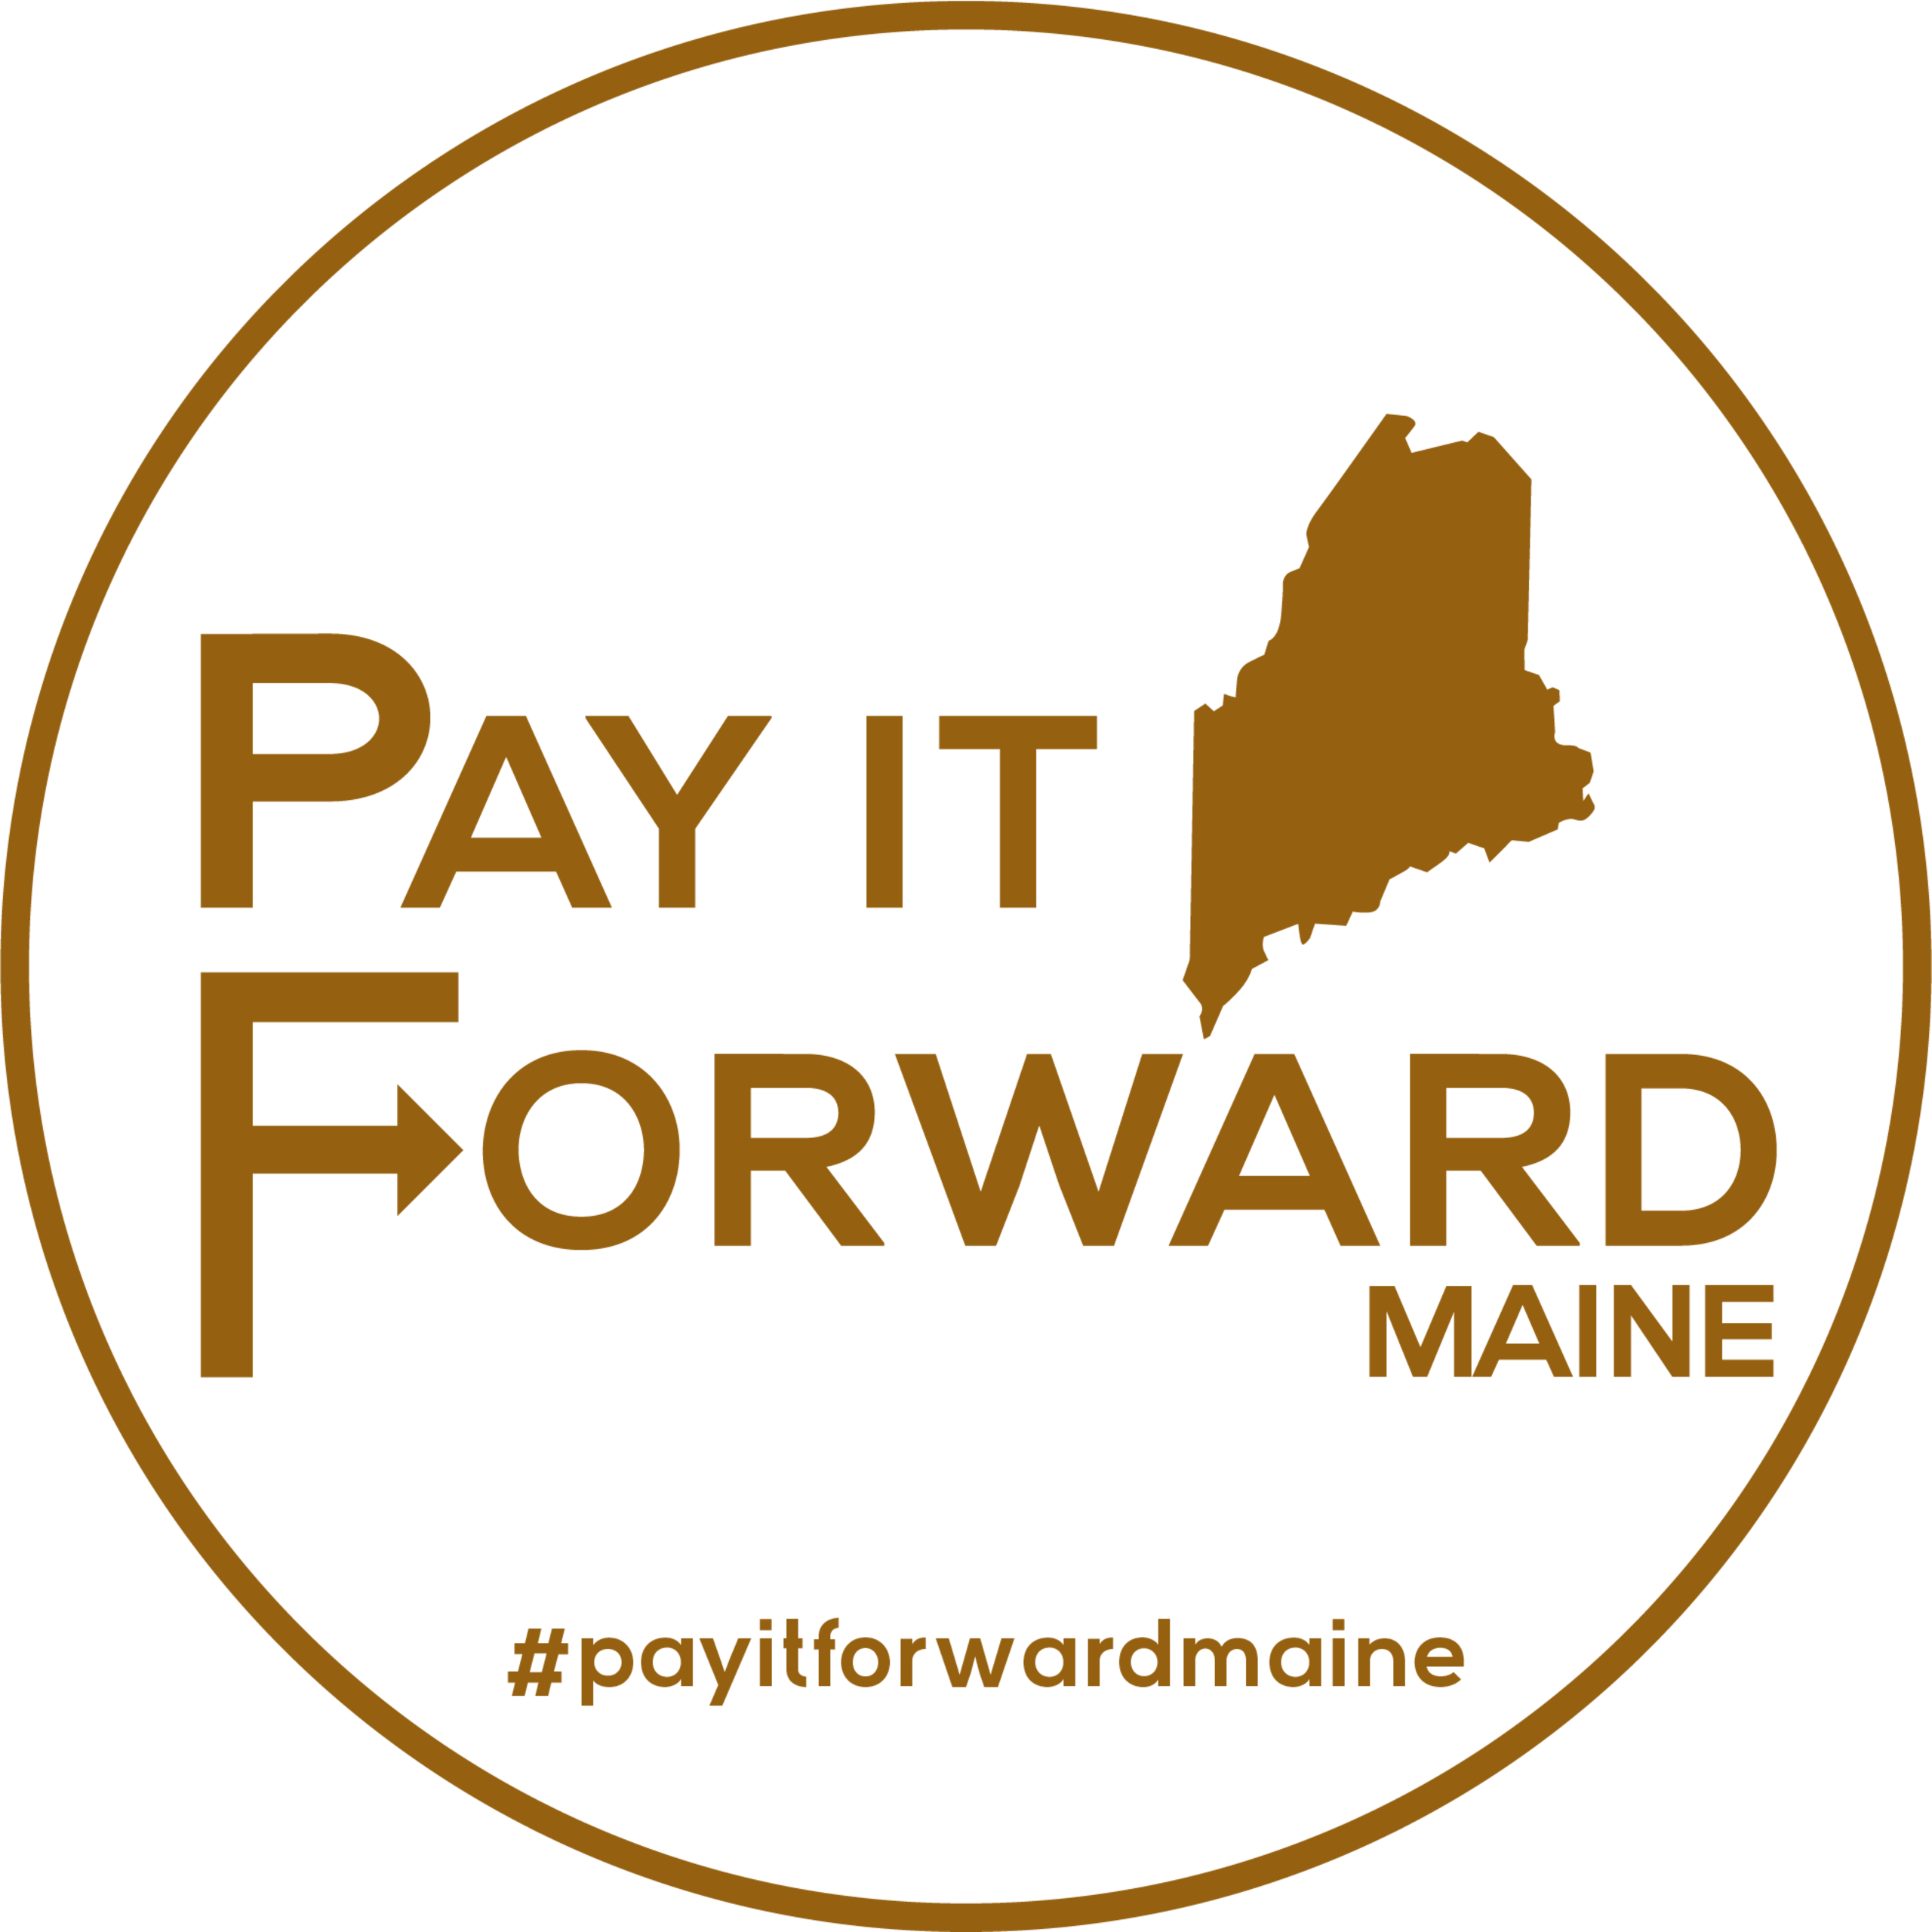 Pay It Forward Maine